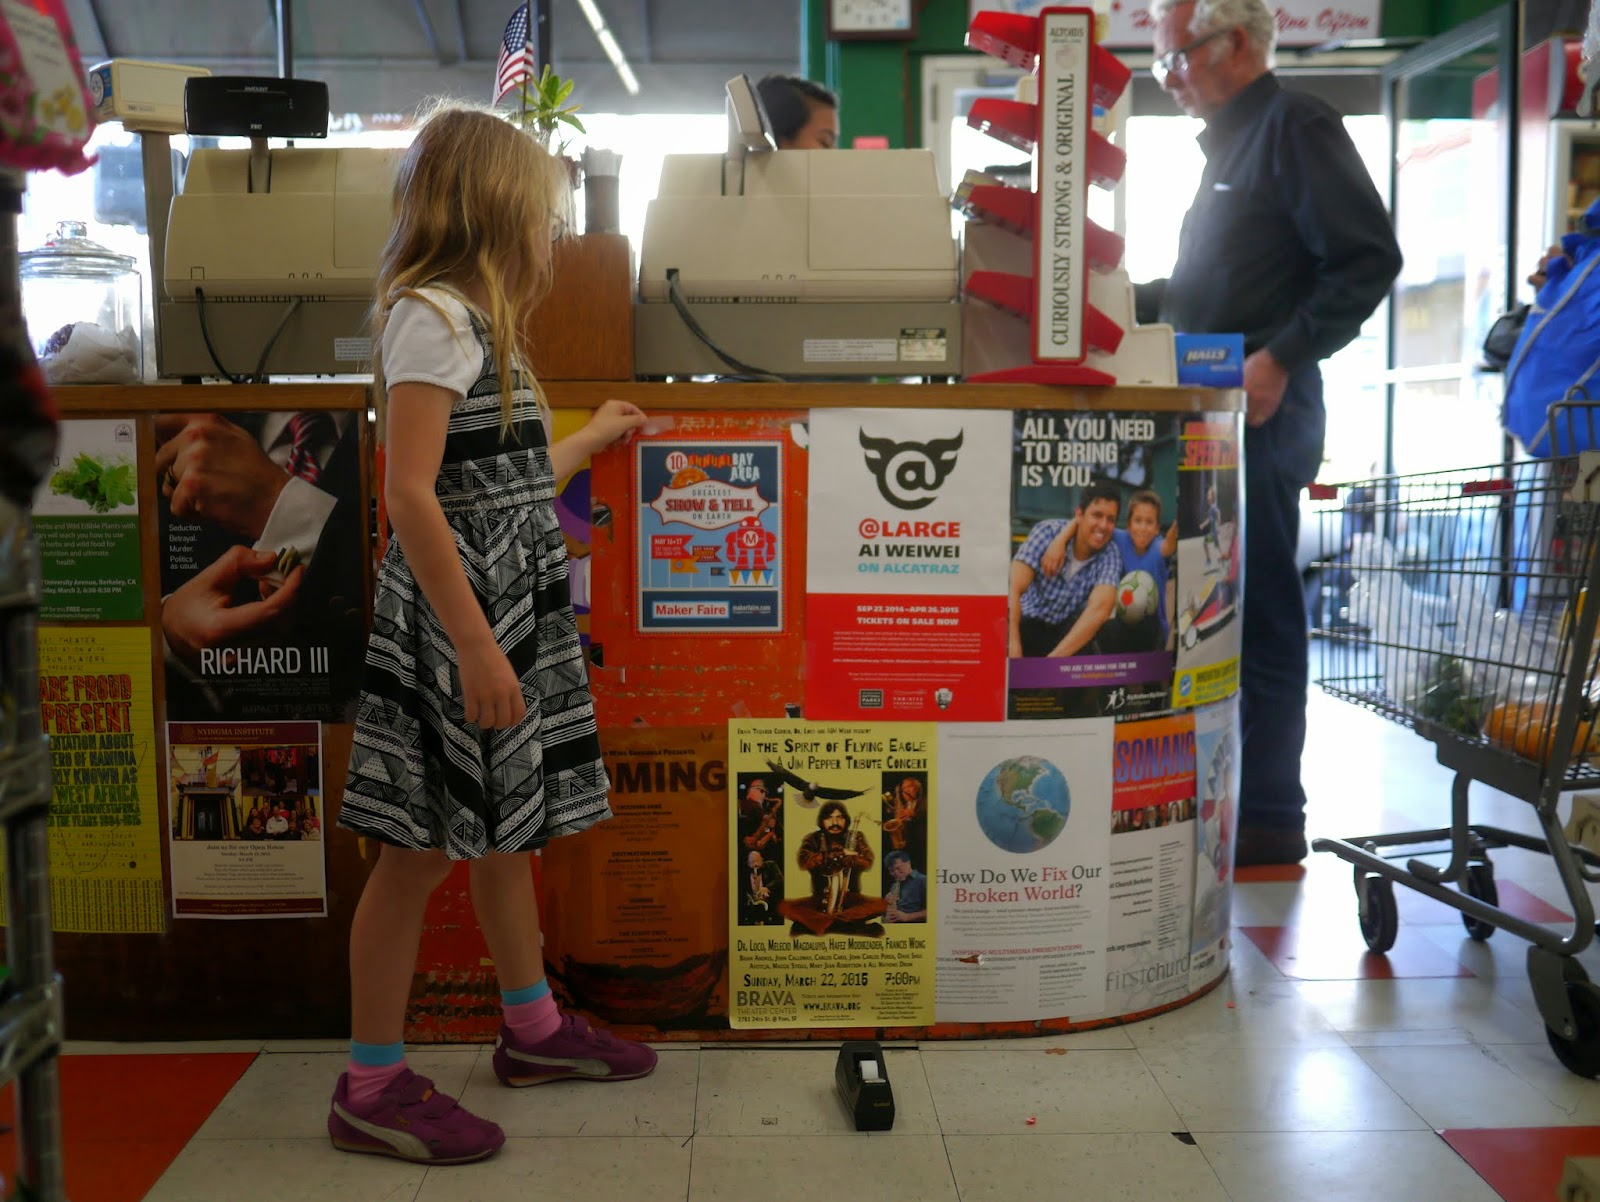 hereu0027s a look at the girls out and about all over berkeley putting up their flyers and postcards over the last few days